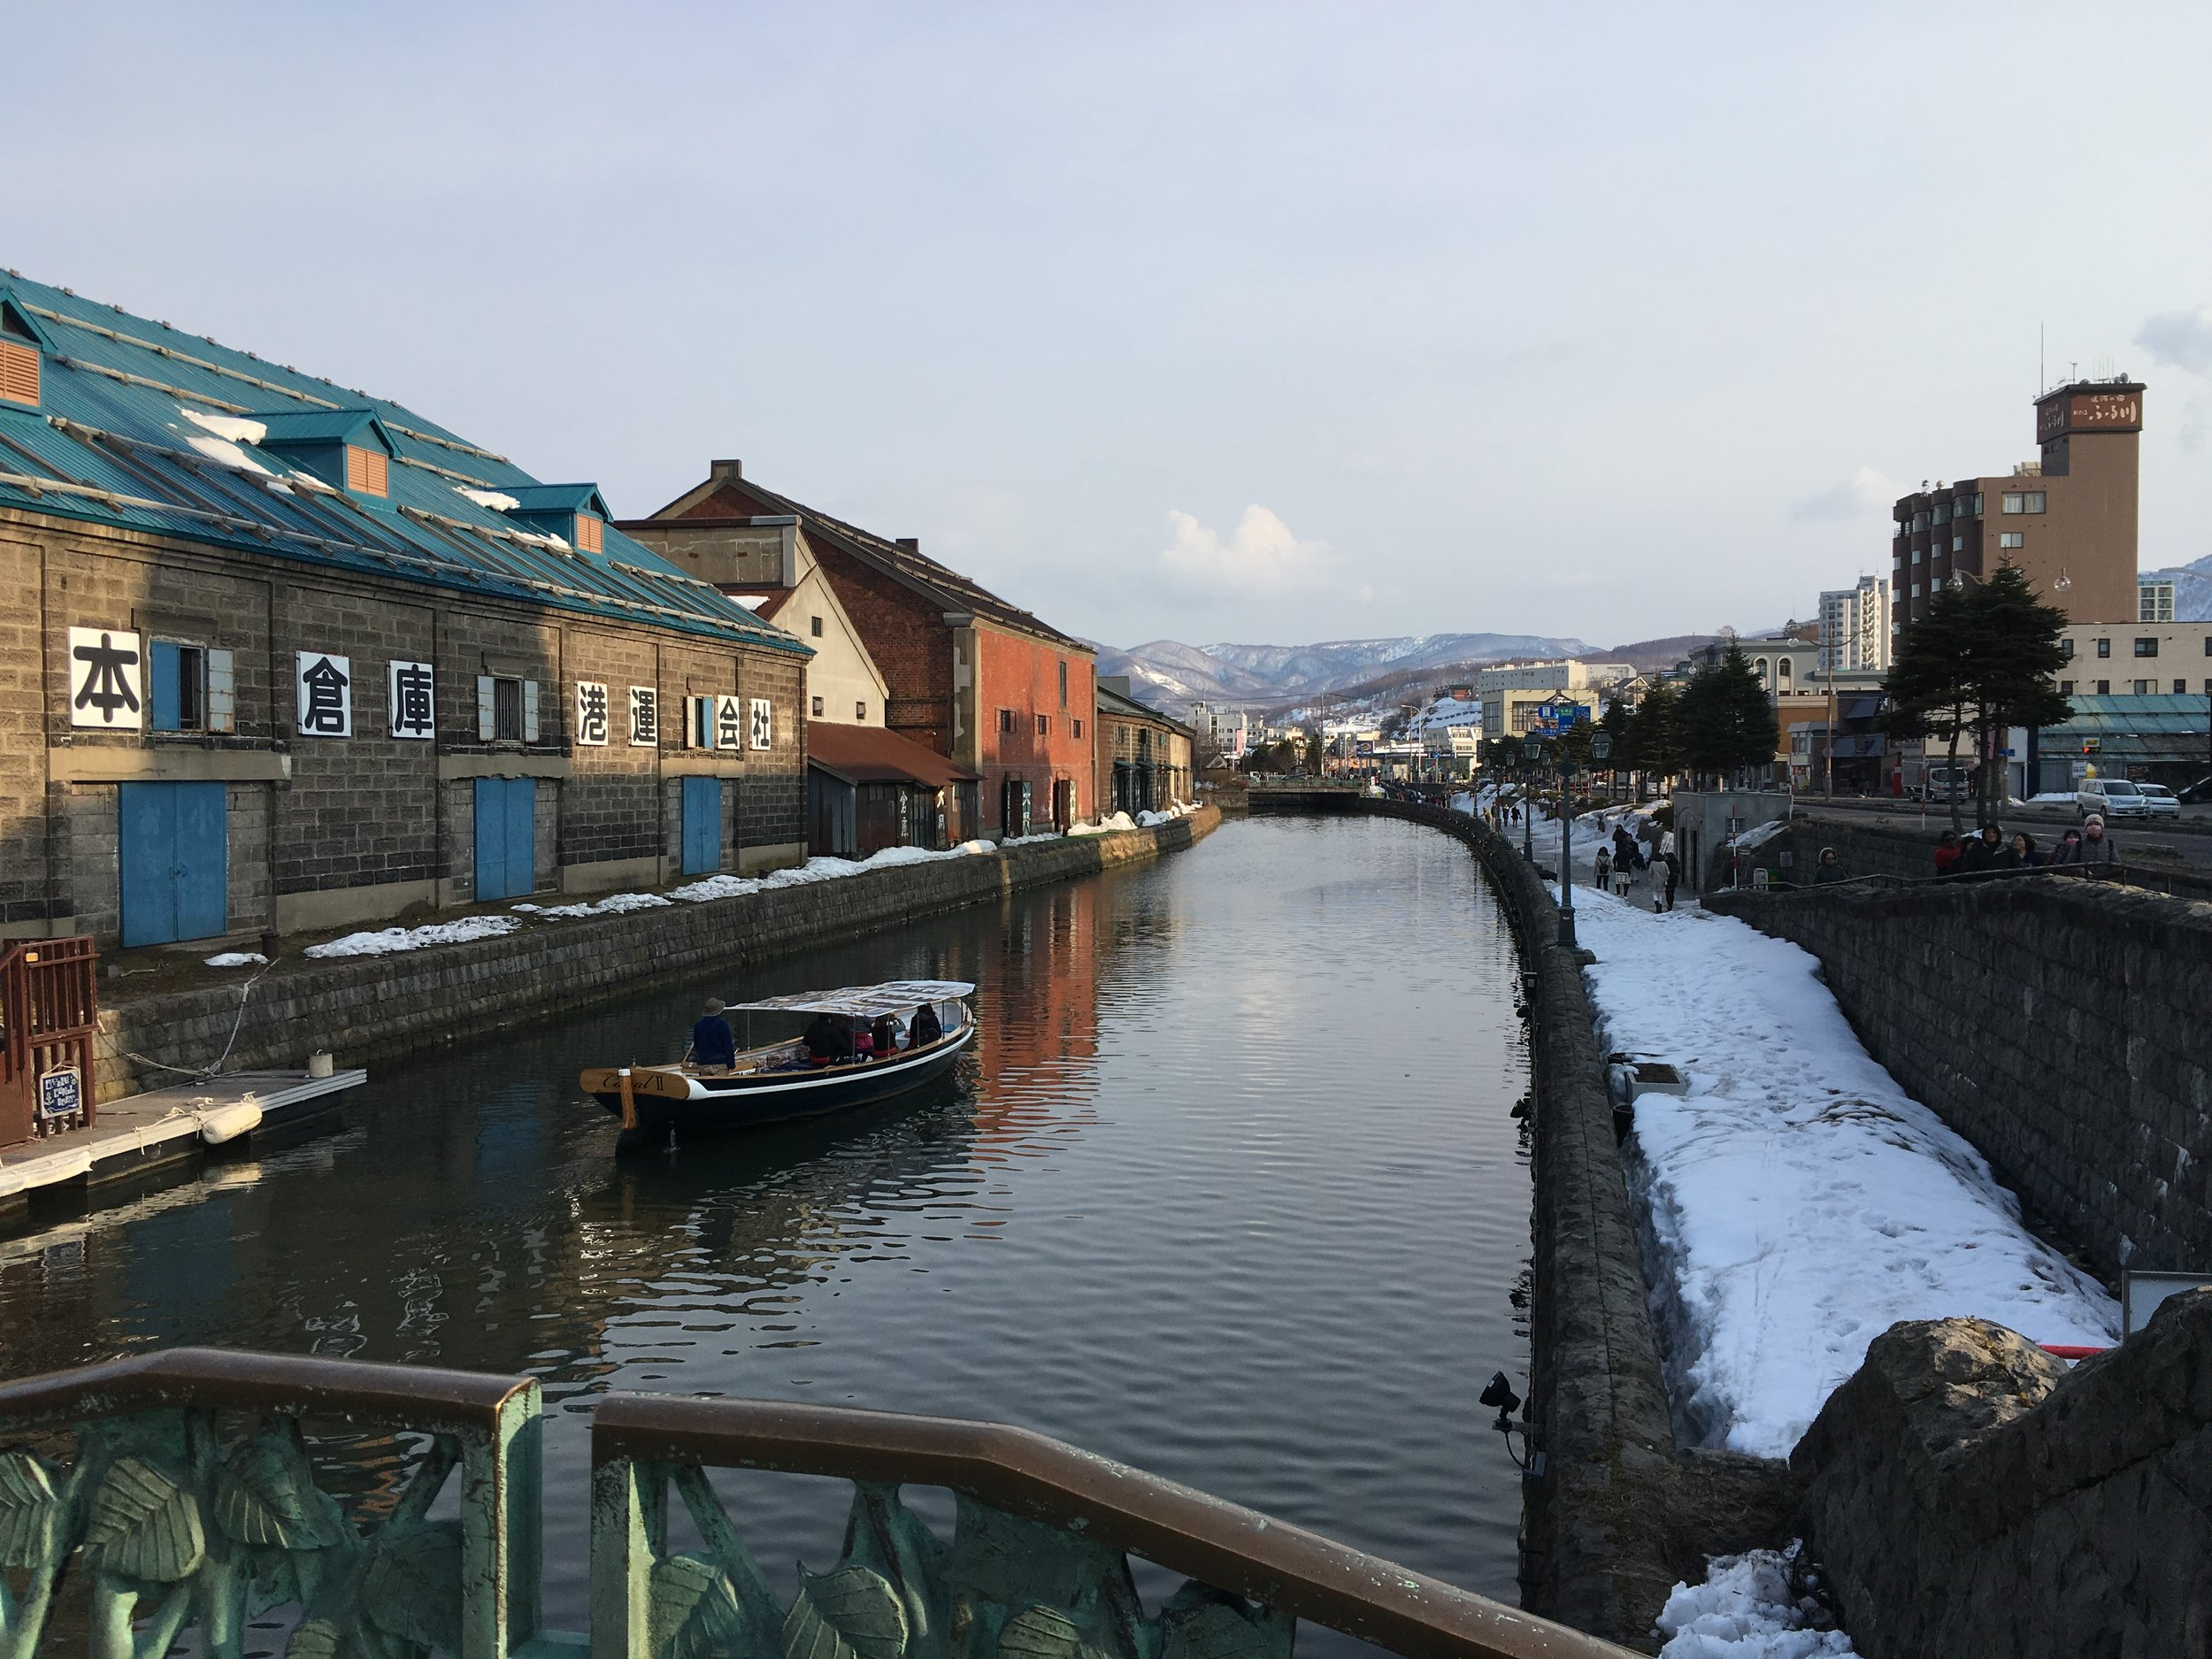 Otaru canal, which is a 10 minute walk from Otaru station.